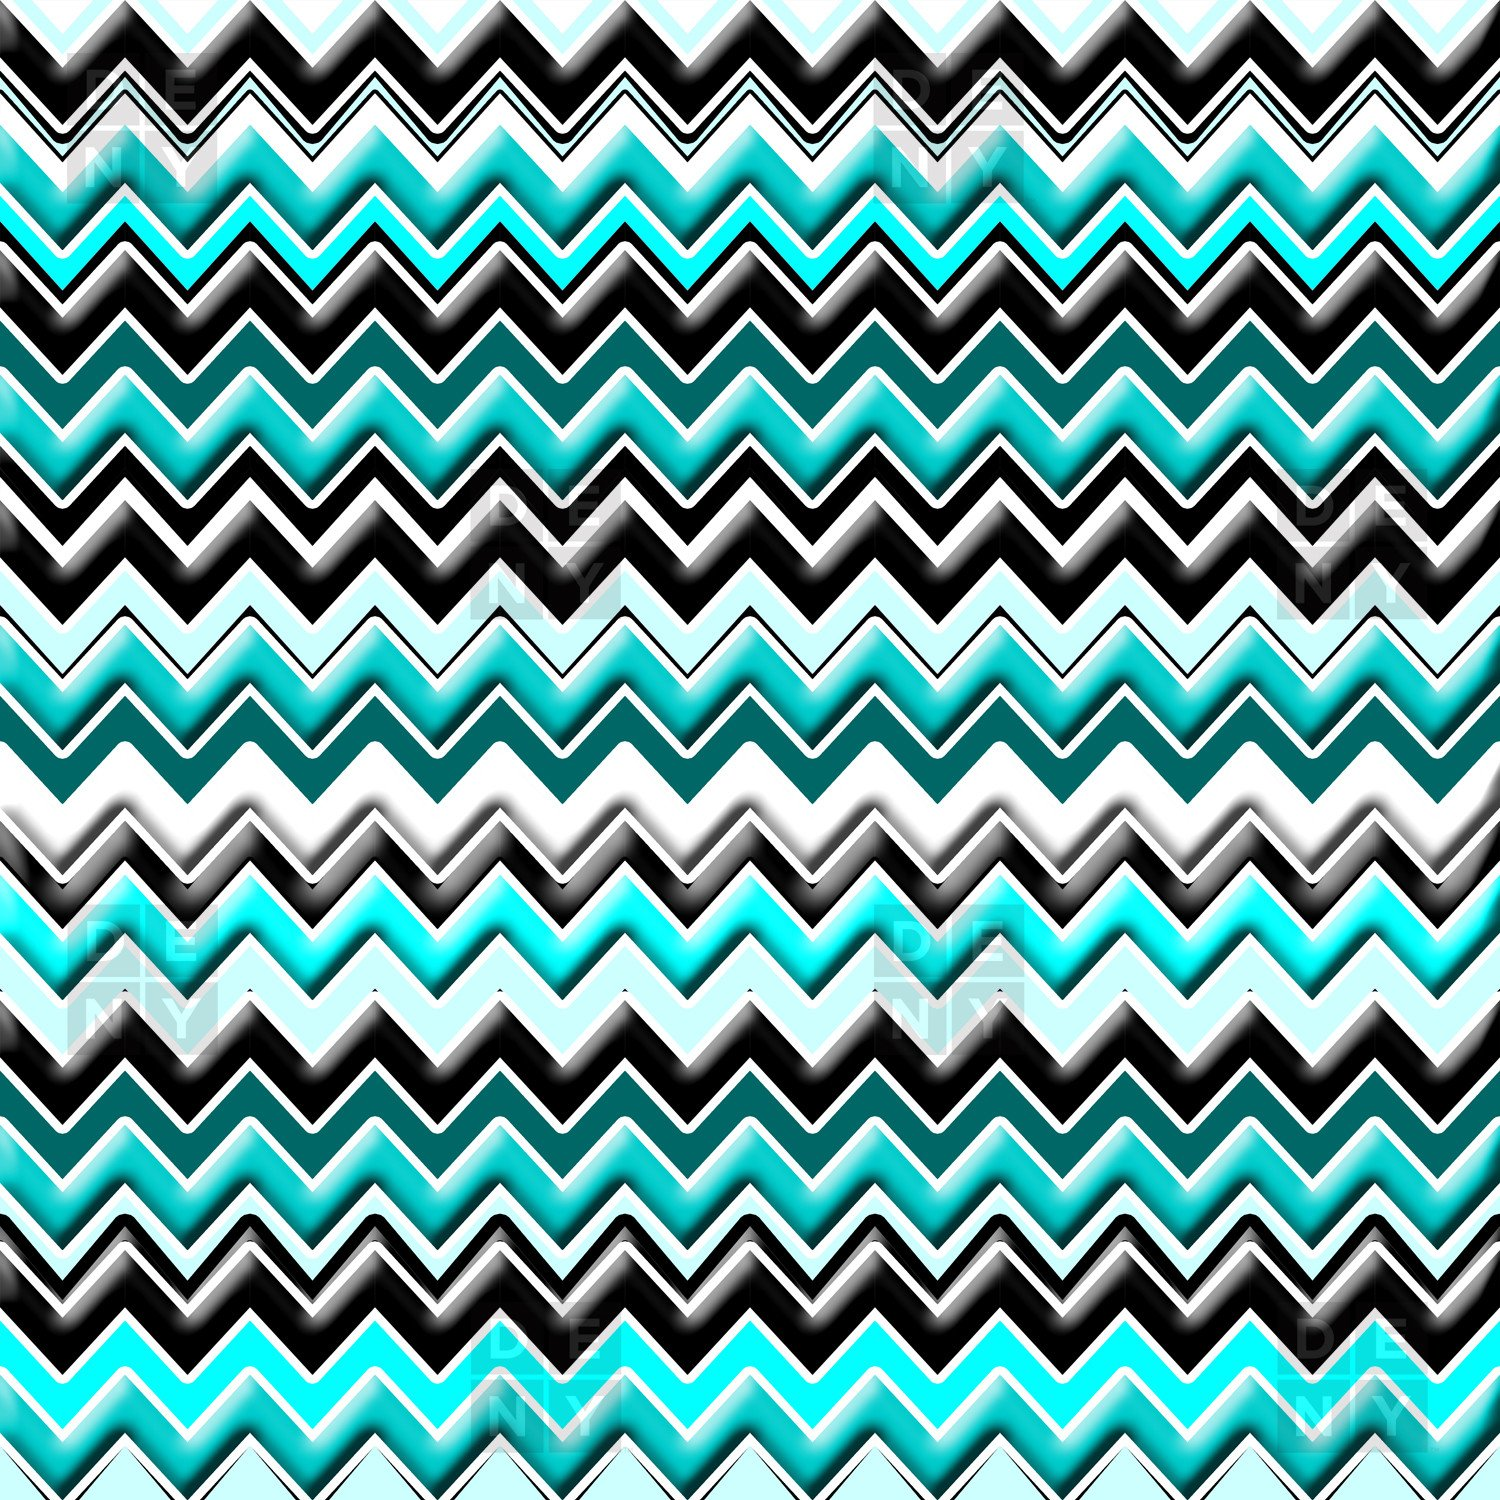 chevron pattern background - HD 1500×1500